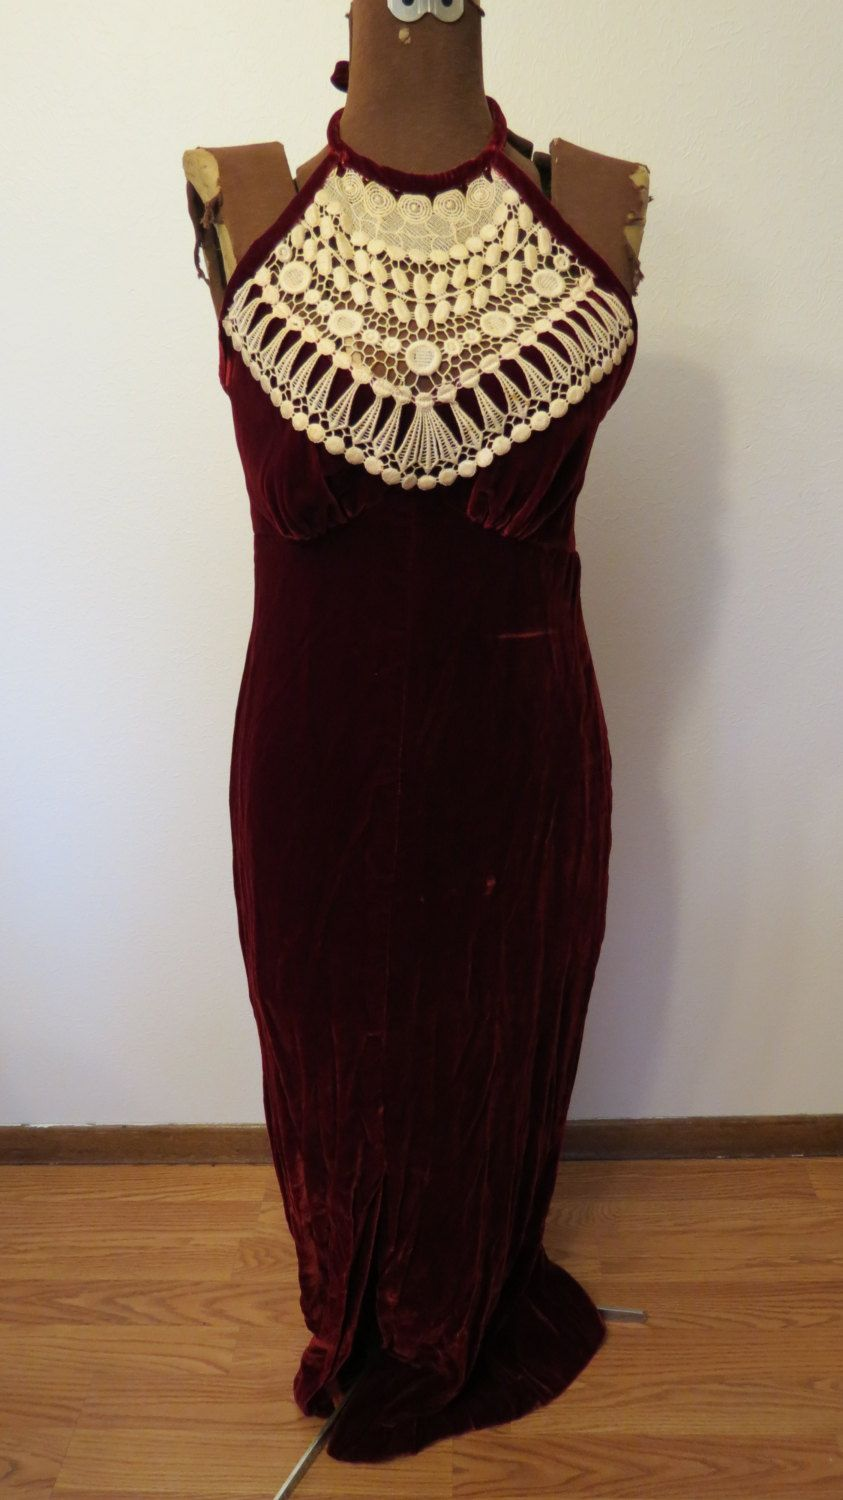 Vintage 30s Style Scarlet Red Crushed Velvet Full Length Halter Dress w Side Slit Size Small - Holiday Christmas New Years Party by AdoredAnew on Etsy